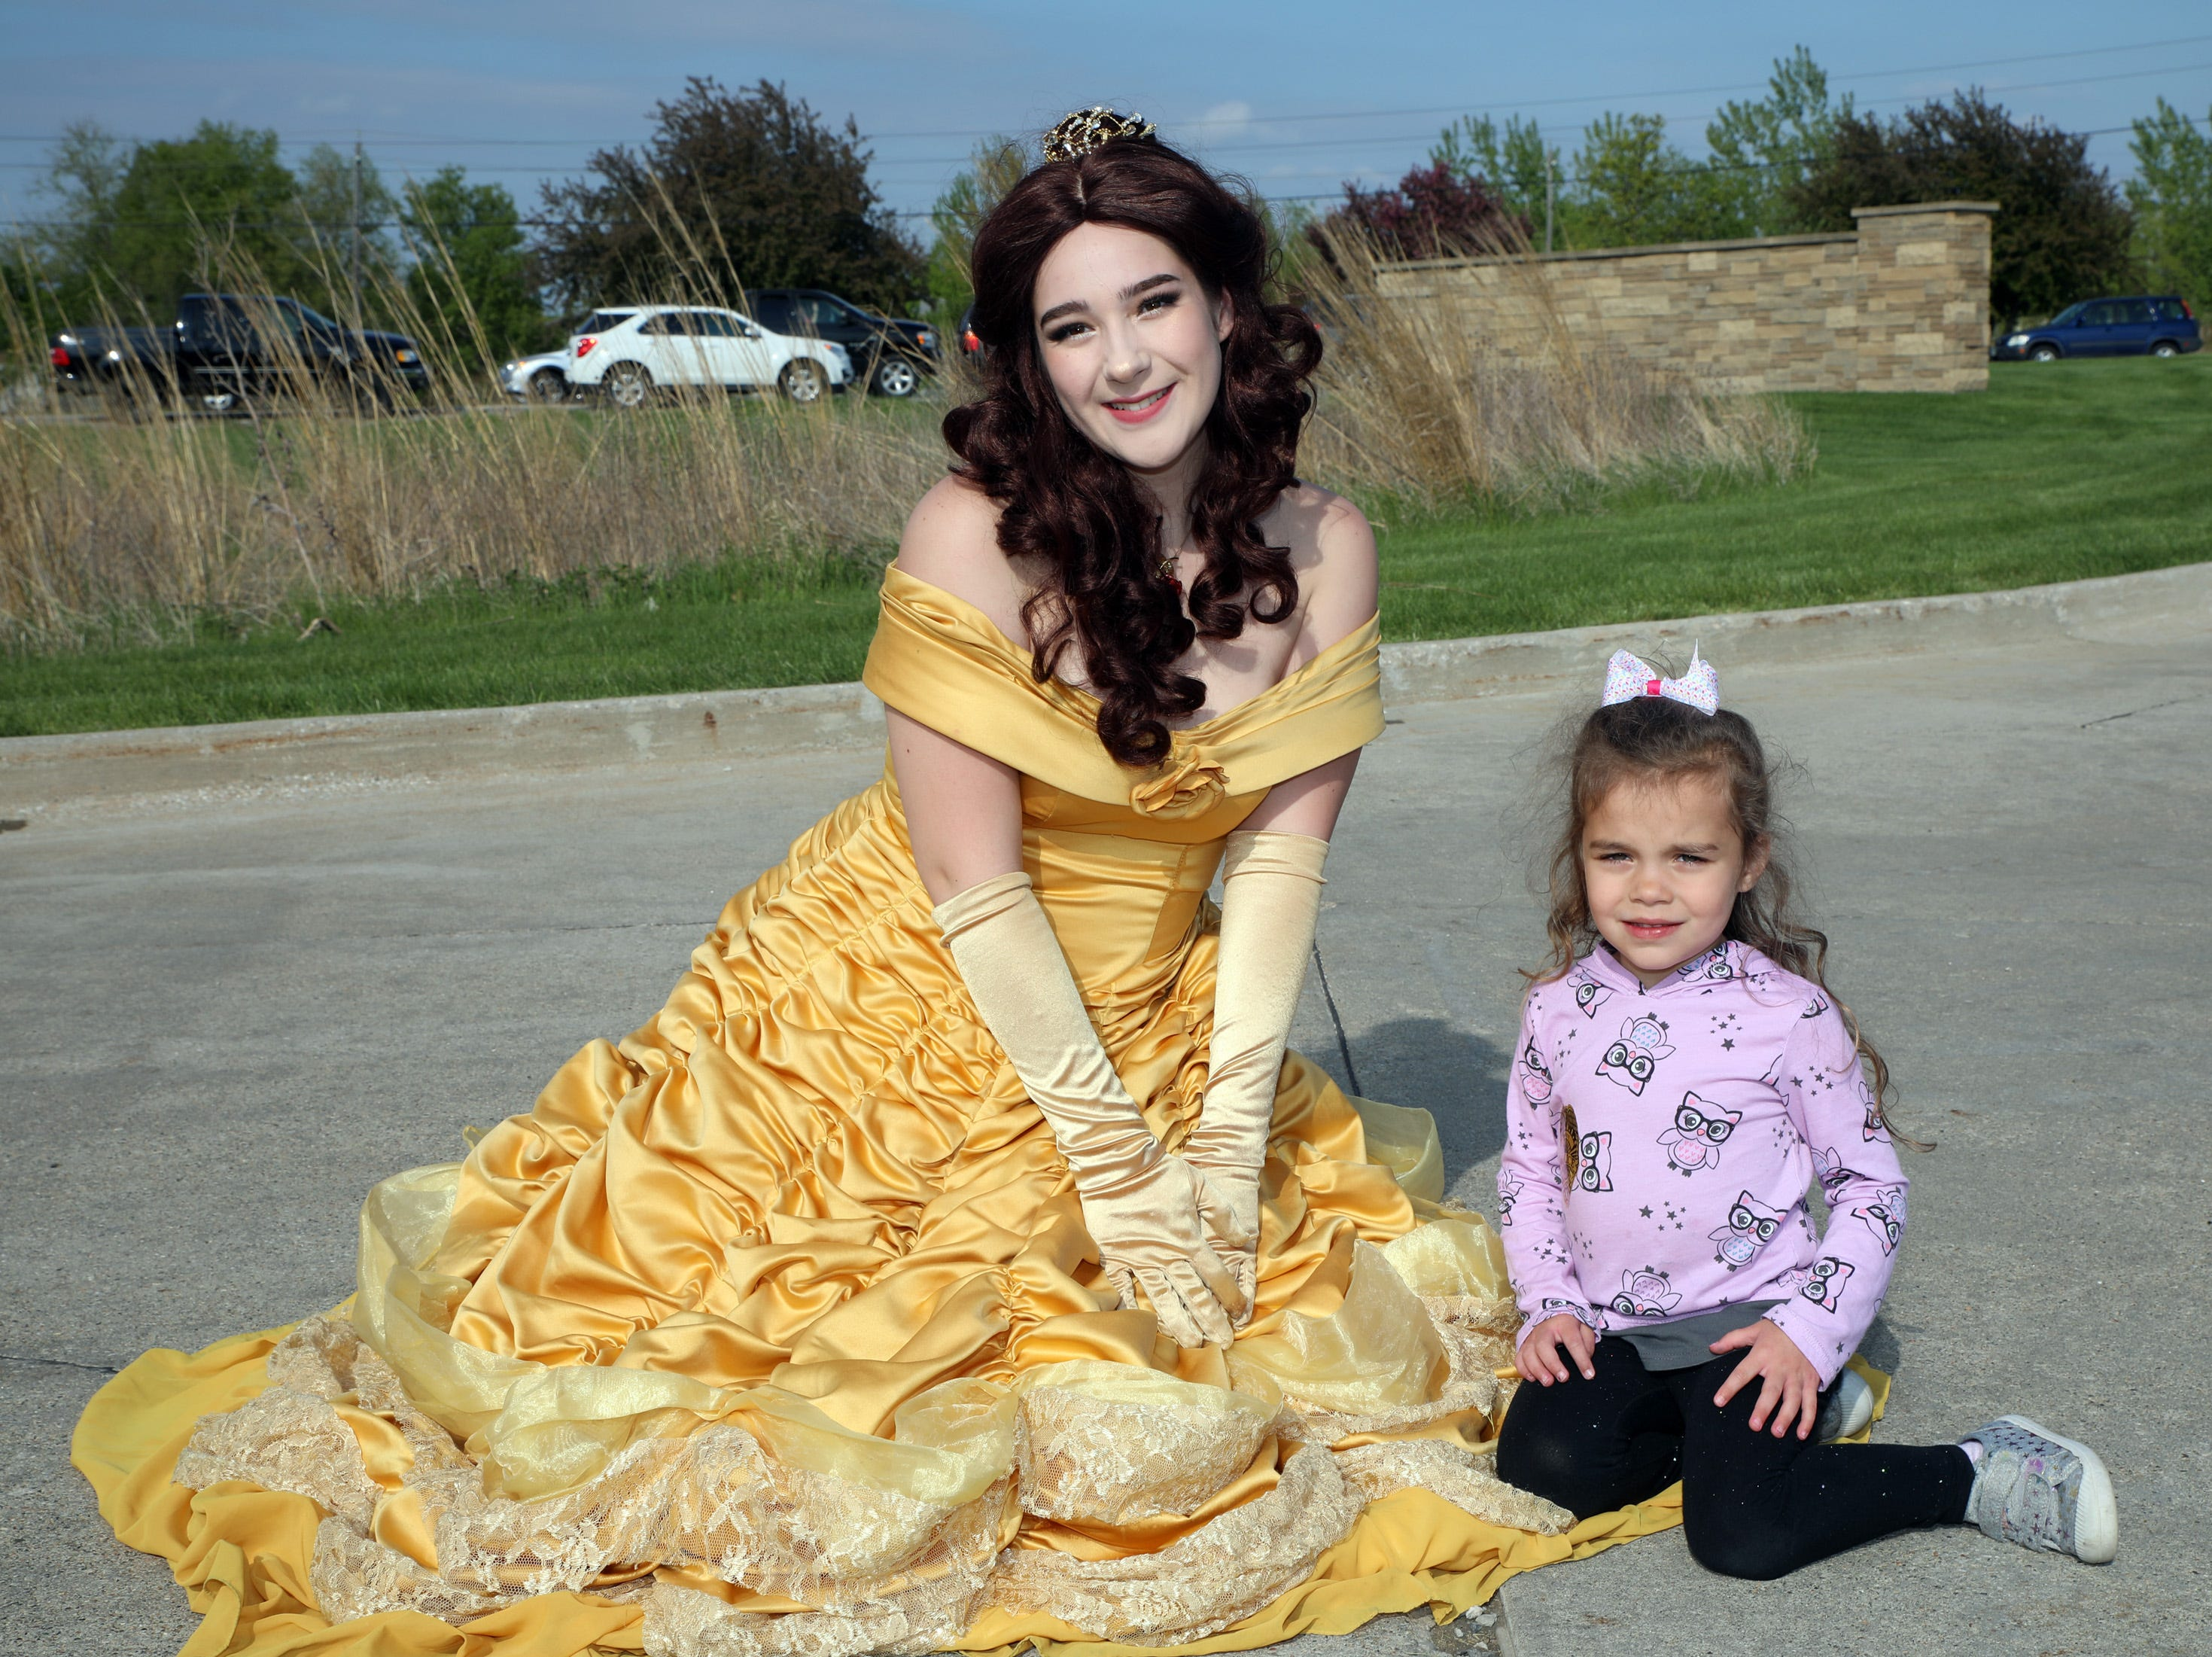 Lilly Marusiak, 3, of Ankeny sits with Belle from Beauty and the Beast at the Ankeny Police Week Community Picnic on Tuesday, May 14, 2019 at the Ankeny Police Headquarters located at 411 SW Ordnance Road. The event featured a tour of the police station, magician Jonathon May, free Chick Fil-A sandwiches for the first 1,000 guests, free Kona Ice, temporary tattoos, and a great opportunity to meet the officers who protect and serve the city of Ankeny.